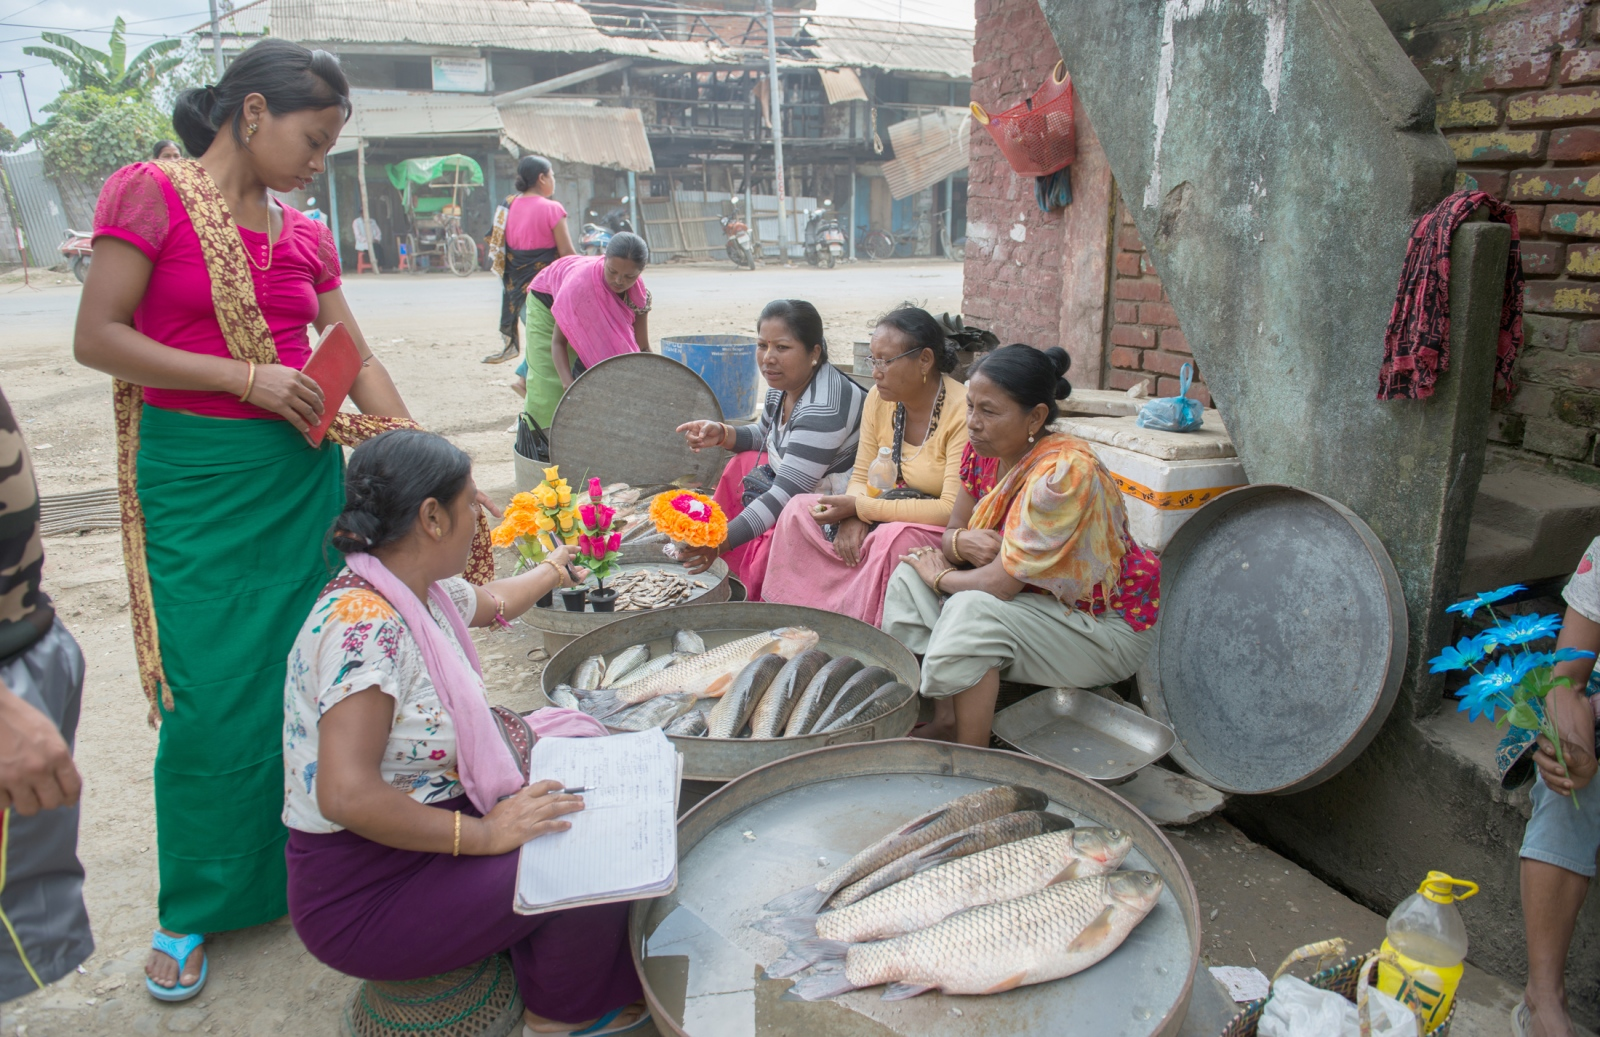 Fisherwomen and vegetable vendors wrap up business for the day in the Ema market in Ningthoukhong, in Manipur. Recurrent floods during monsoon season in 2017 impacted fisheries and vegetable harvest in the area.